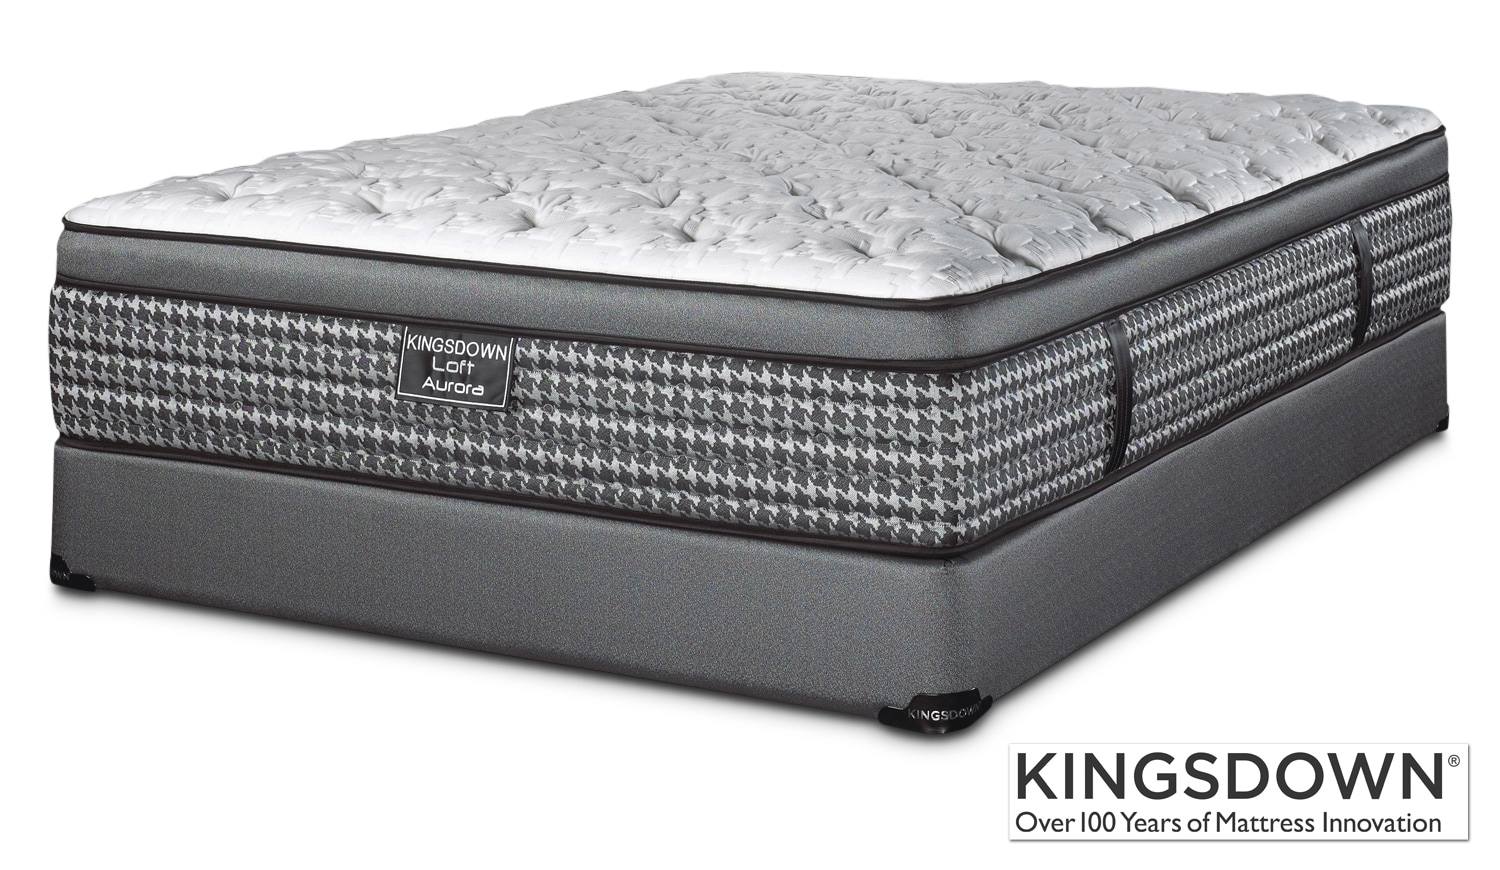 Kingsdown Aurora Ens. Matelas/sommier grand